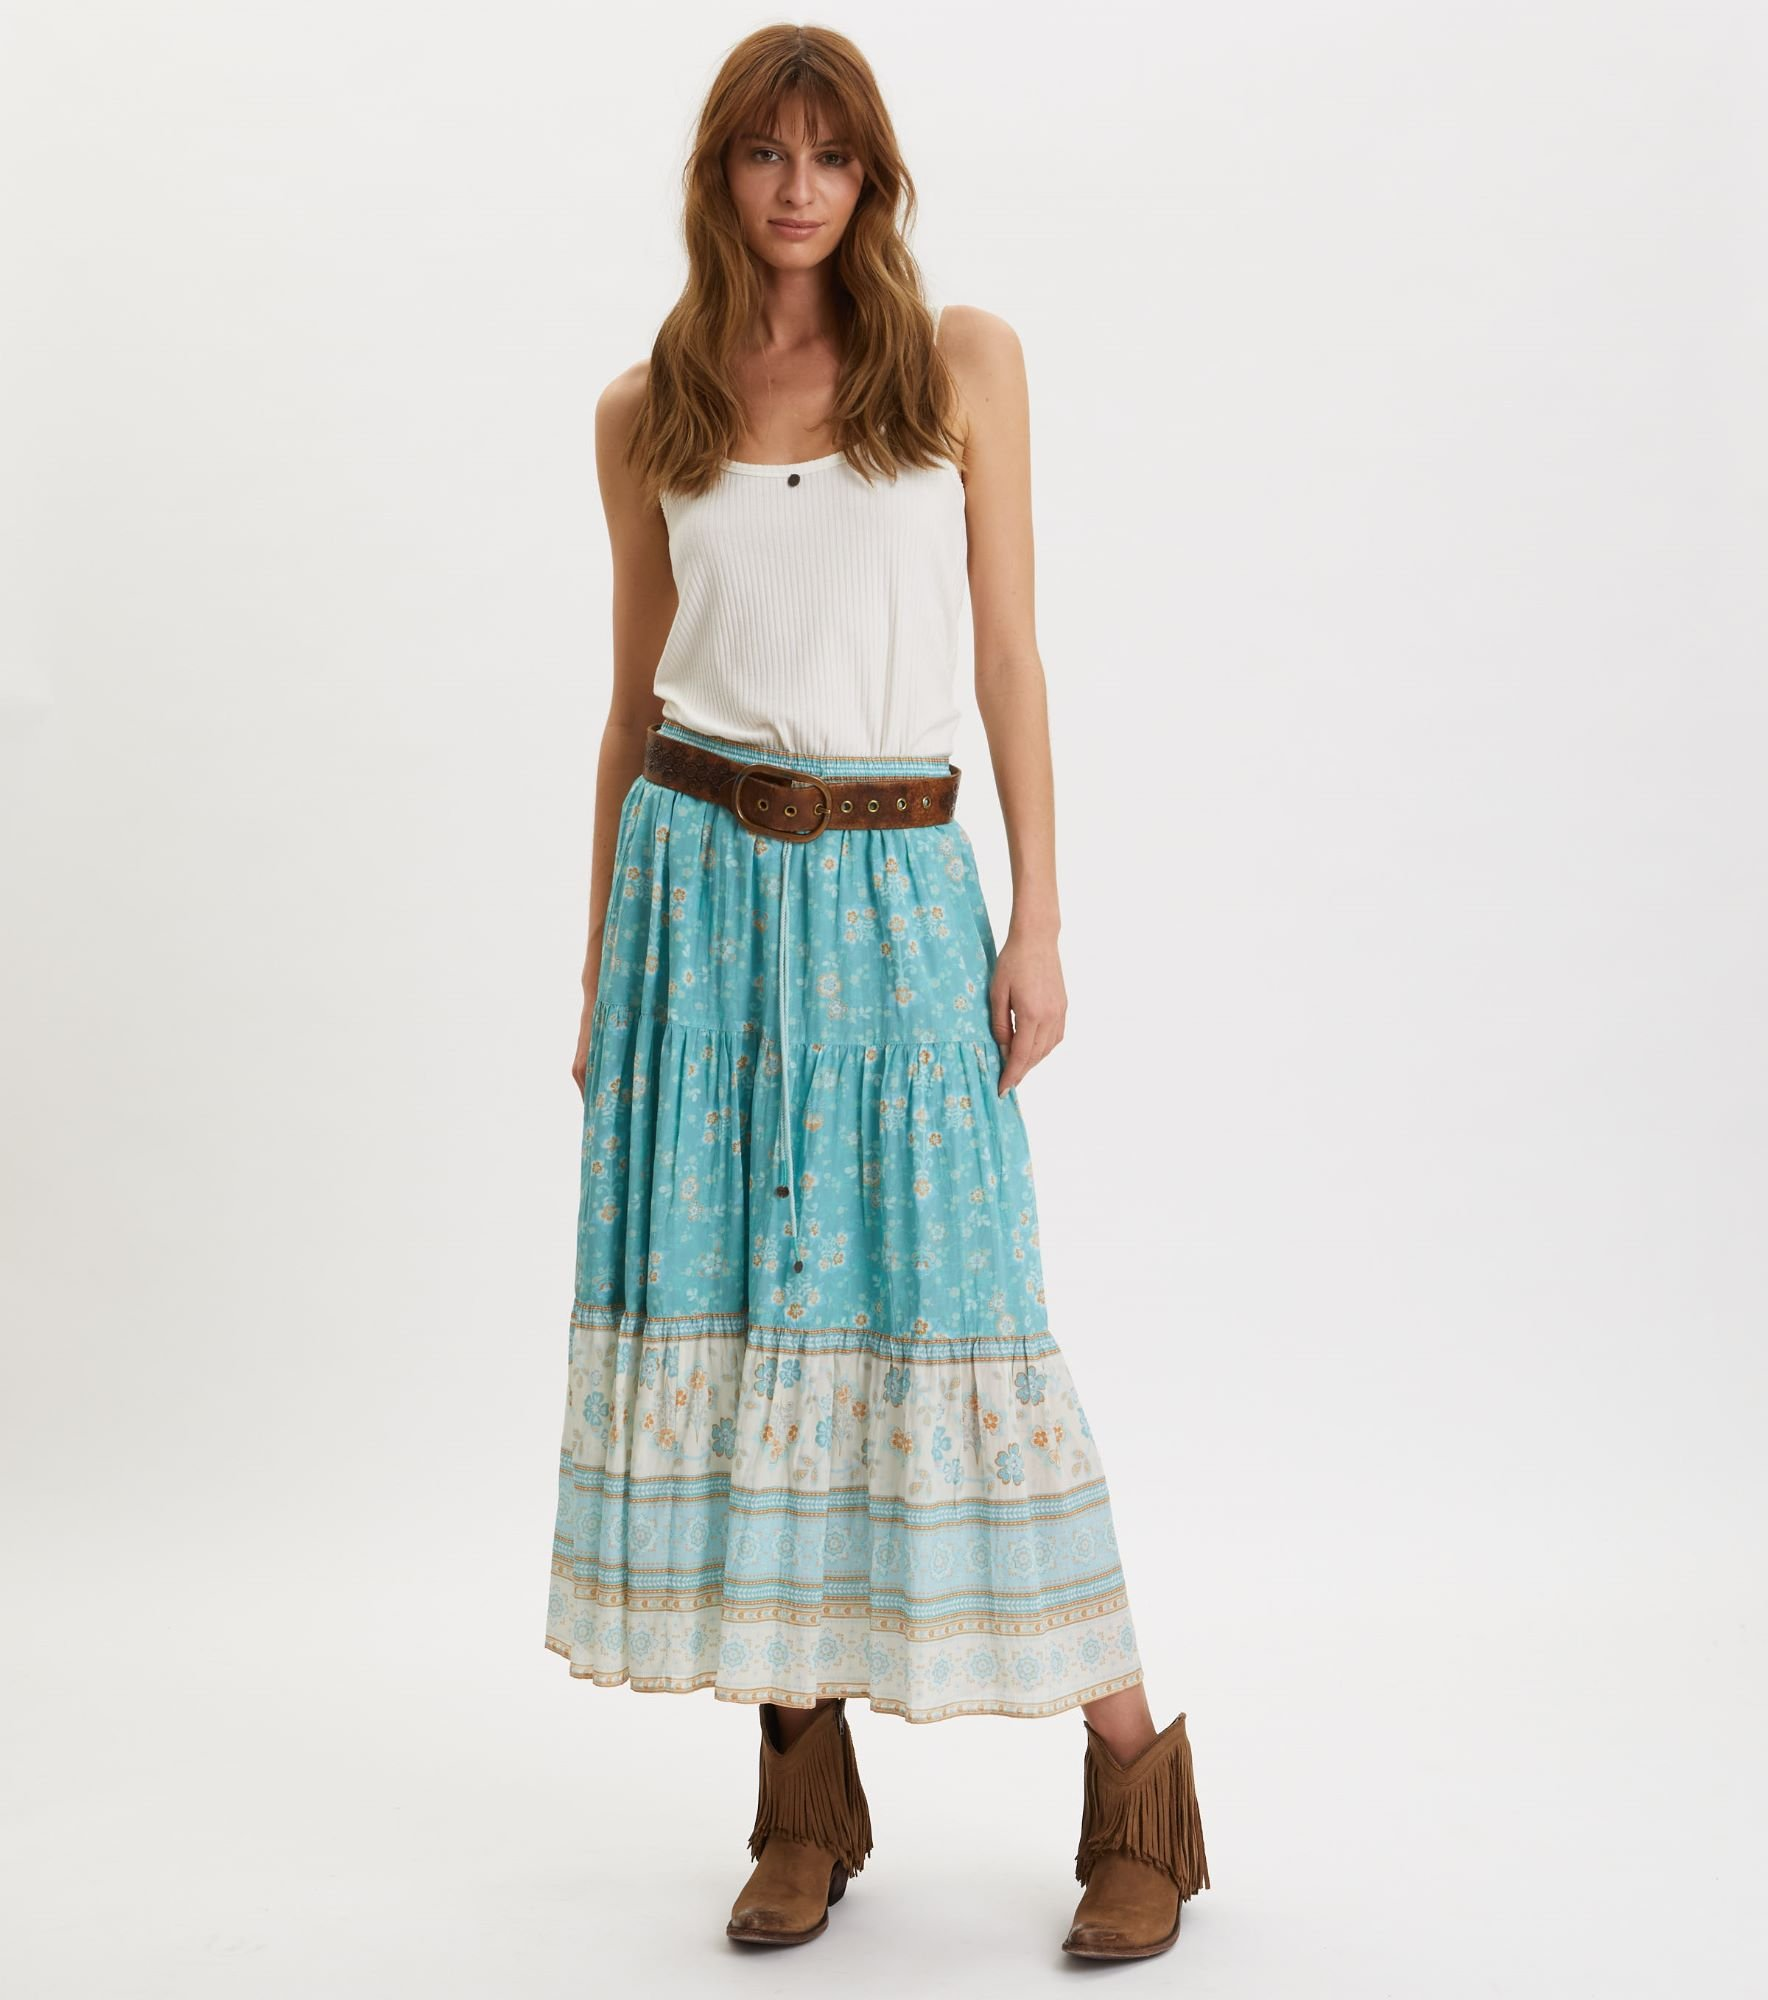 320M-549-Bohemic skirt-MOROCCAN TURUOISE-Front 1